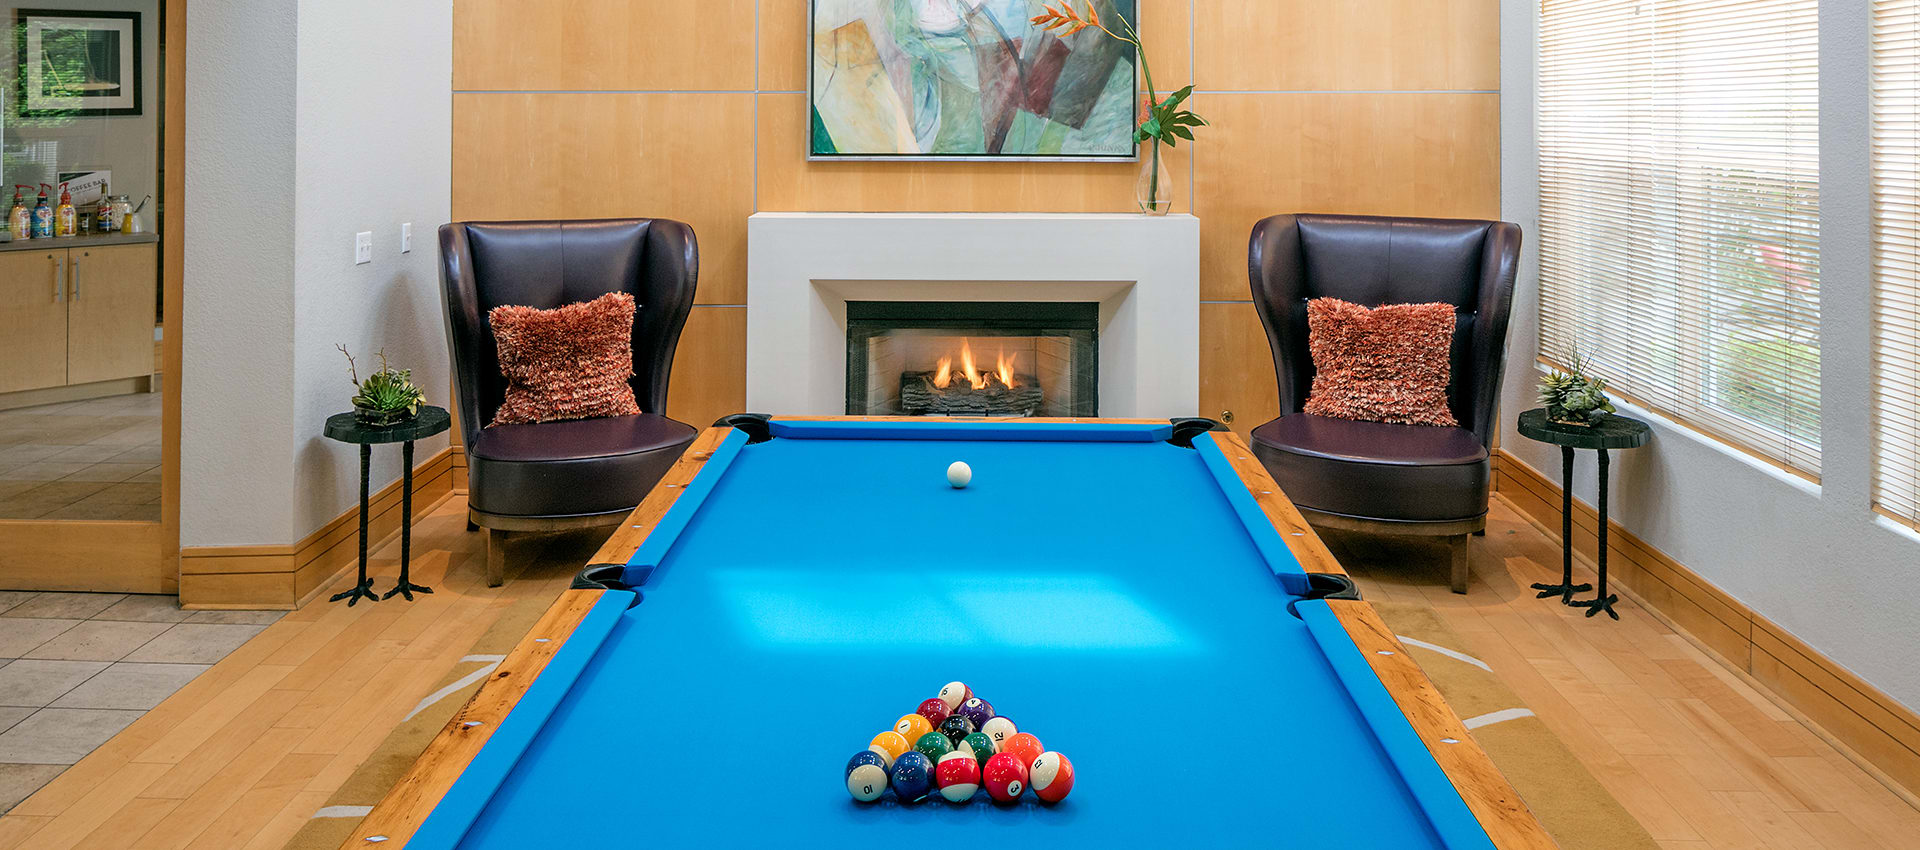 Billiards at Center Pointe Apartment Homes in Beaverton